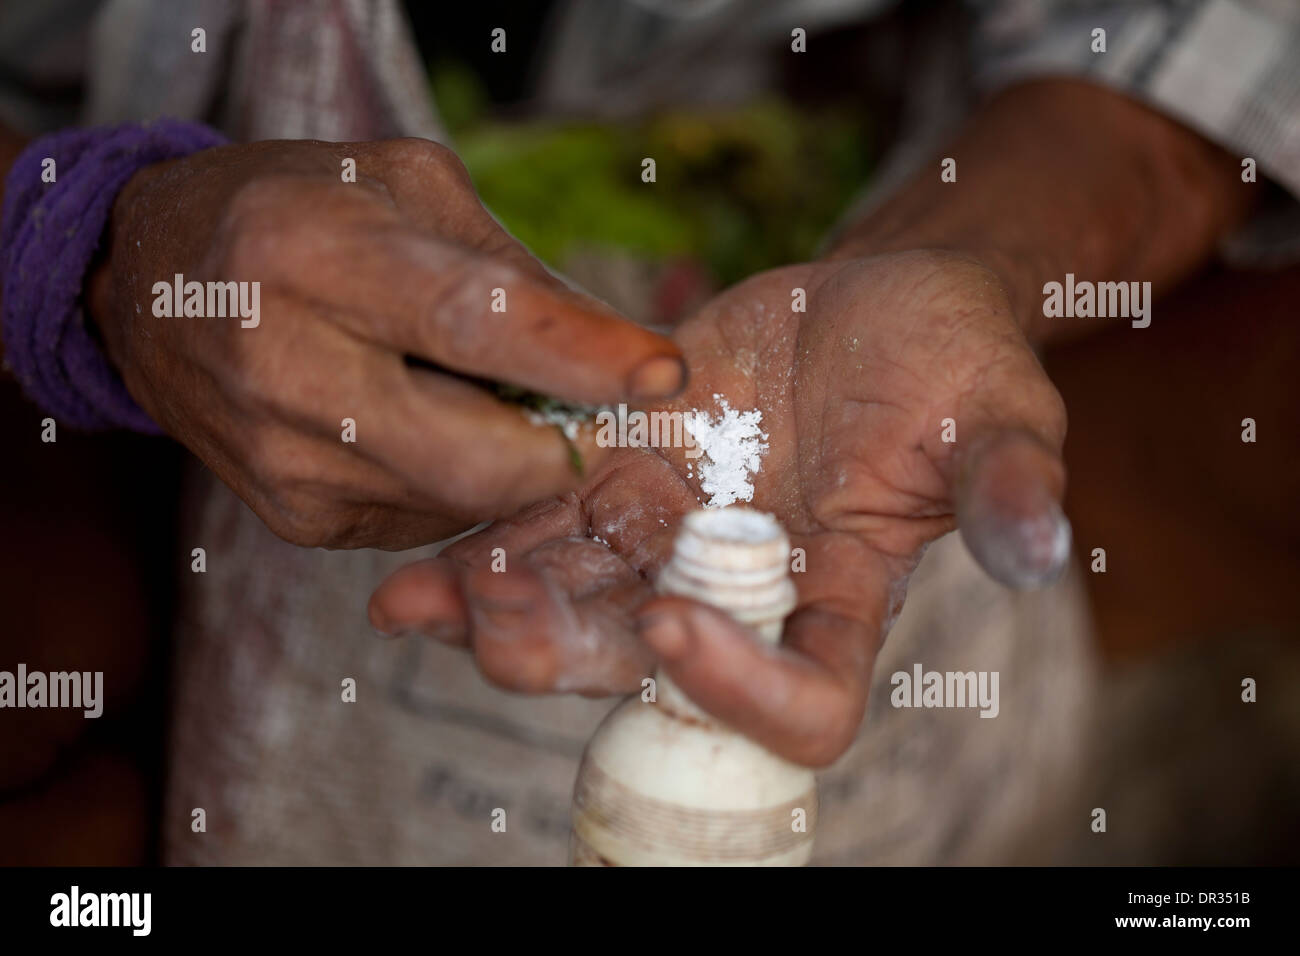 A Hanunoo Mangyan man drops a pinch of slaked lime, or calcium hydroxide, into his hand while preparing his betel chew, nga nga. - Stock Image